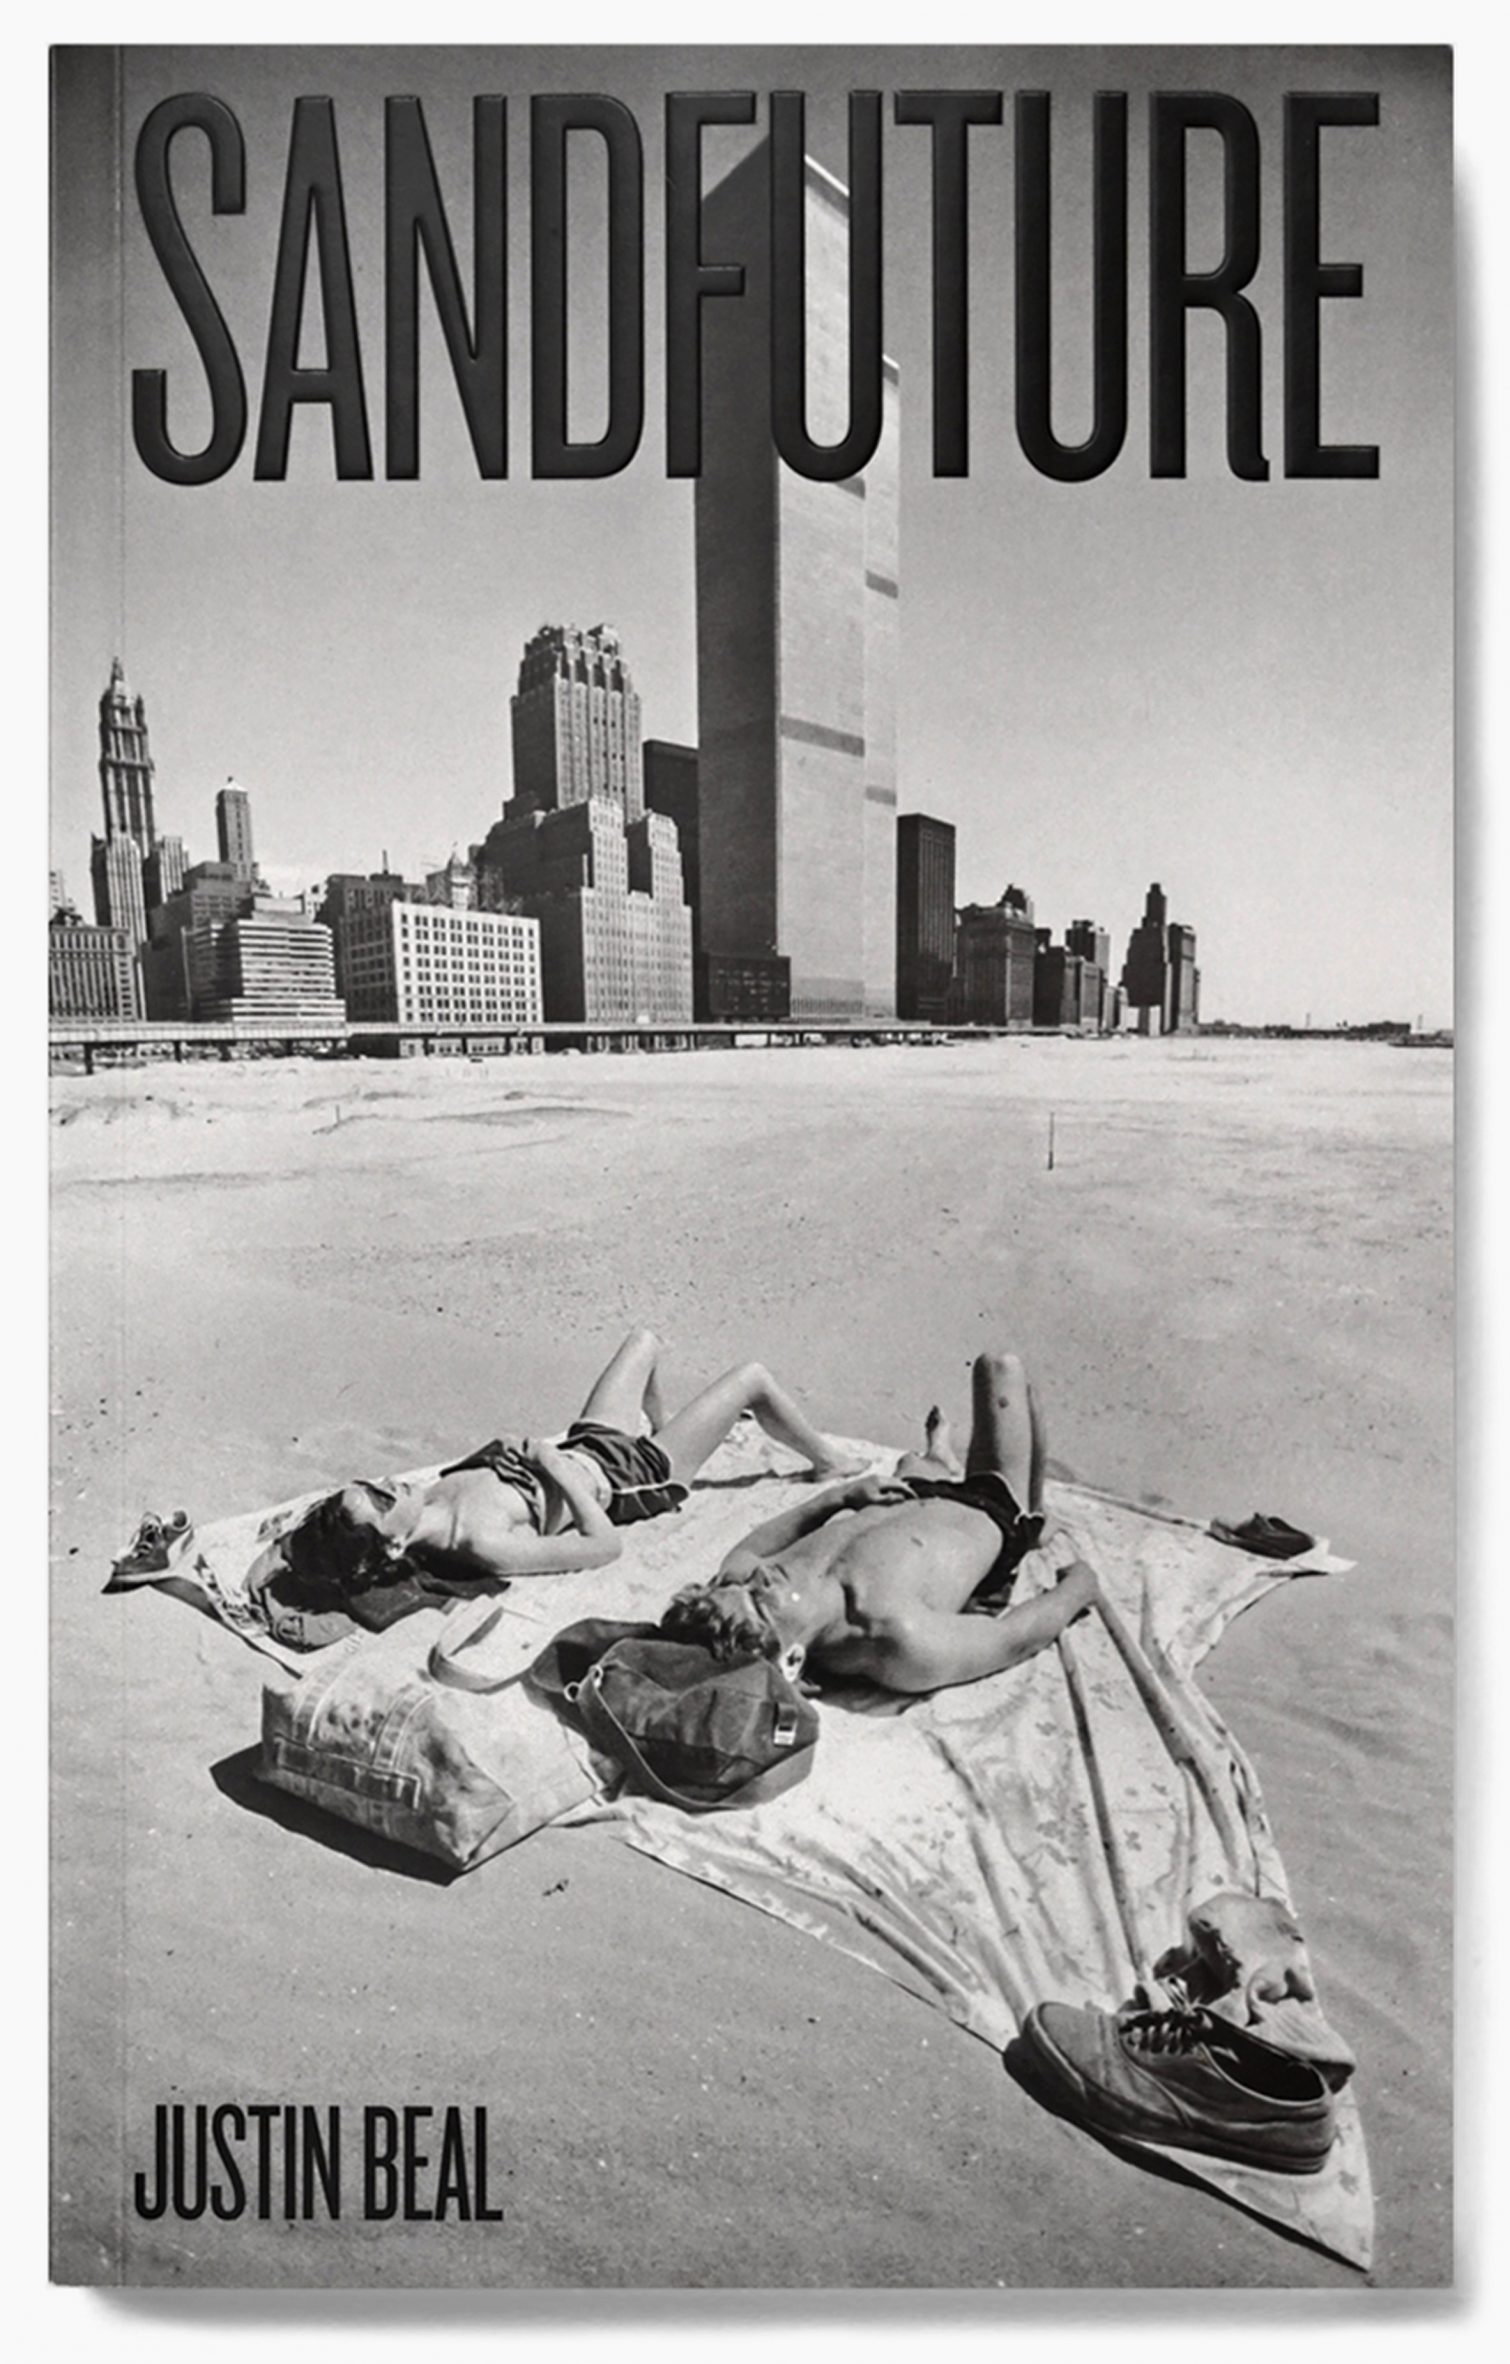 Front cover of Sandfuture by Justin Beal